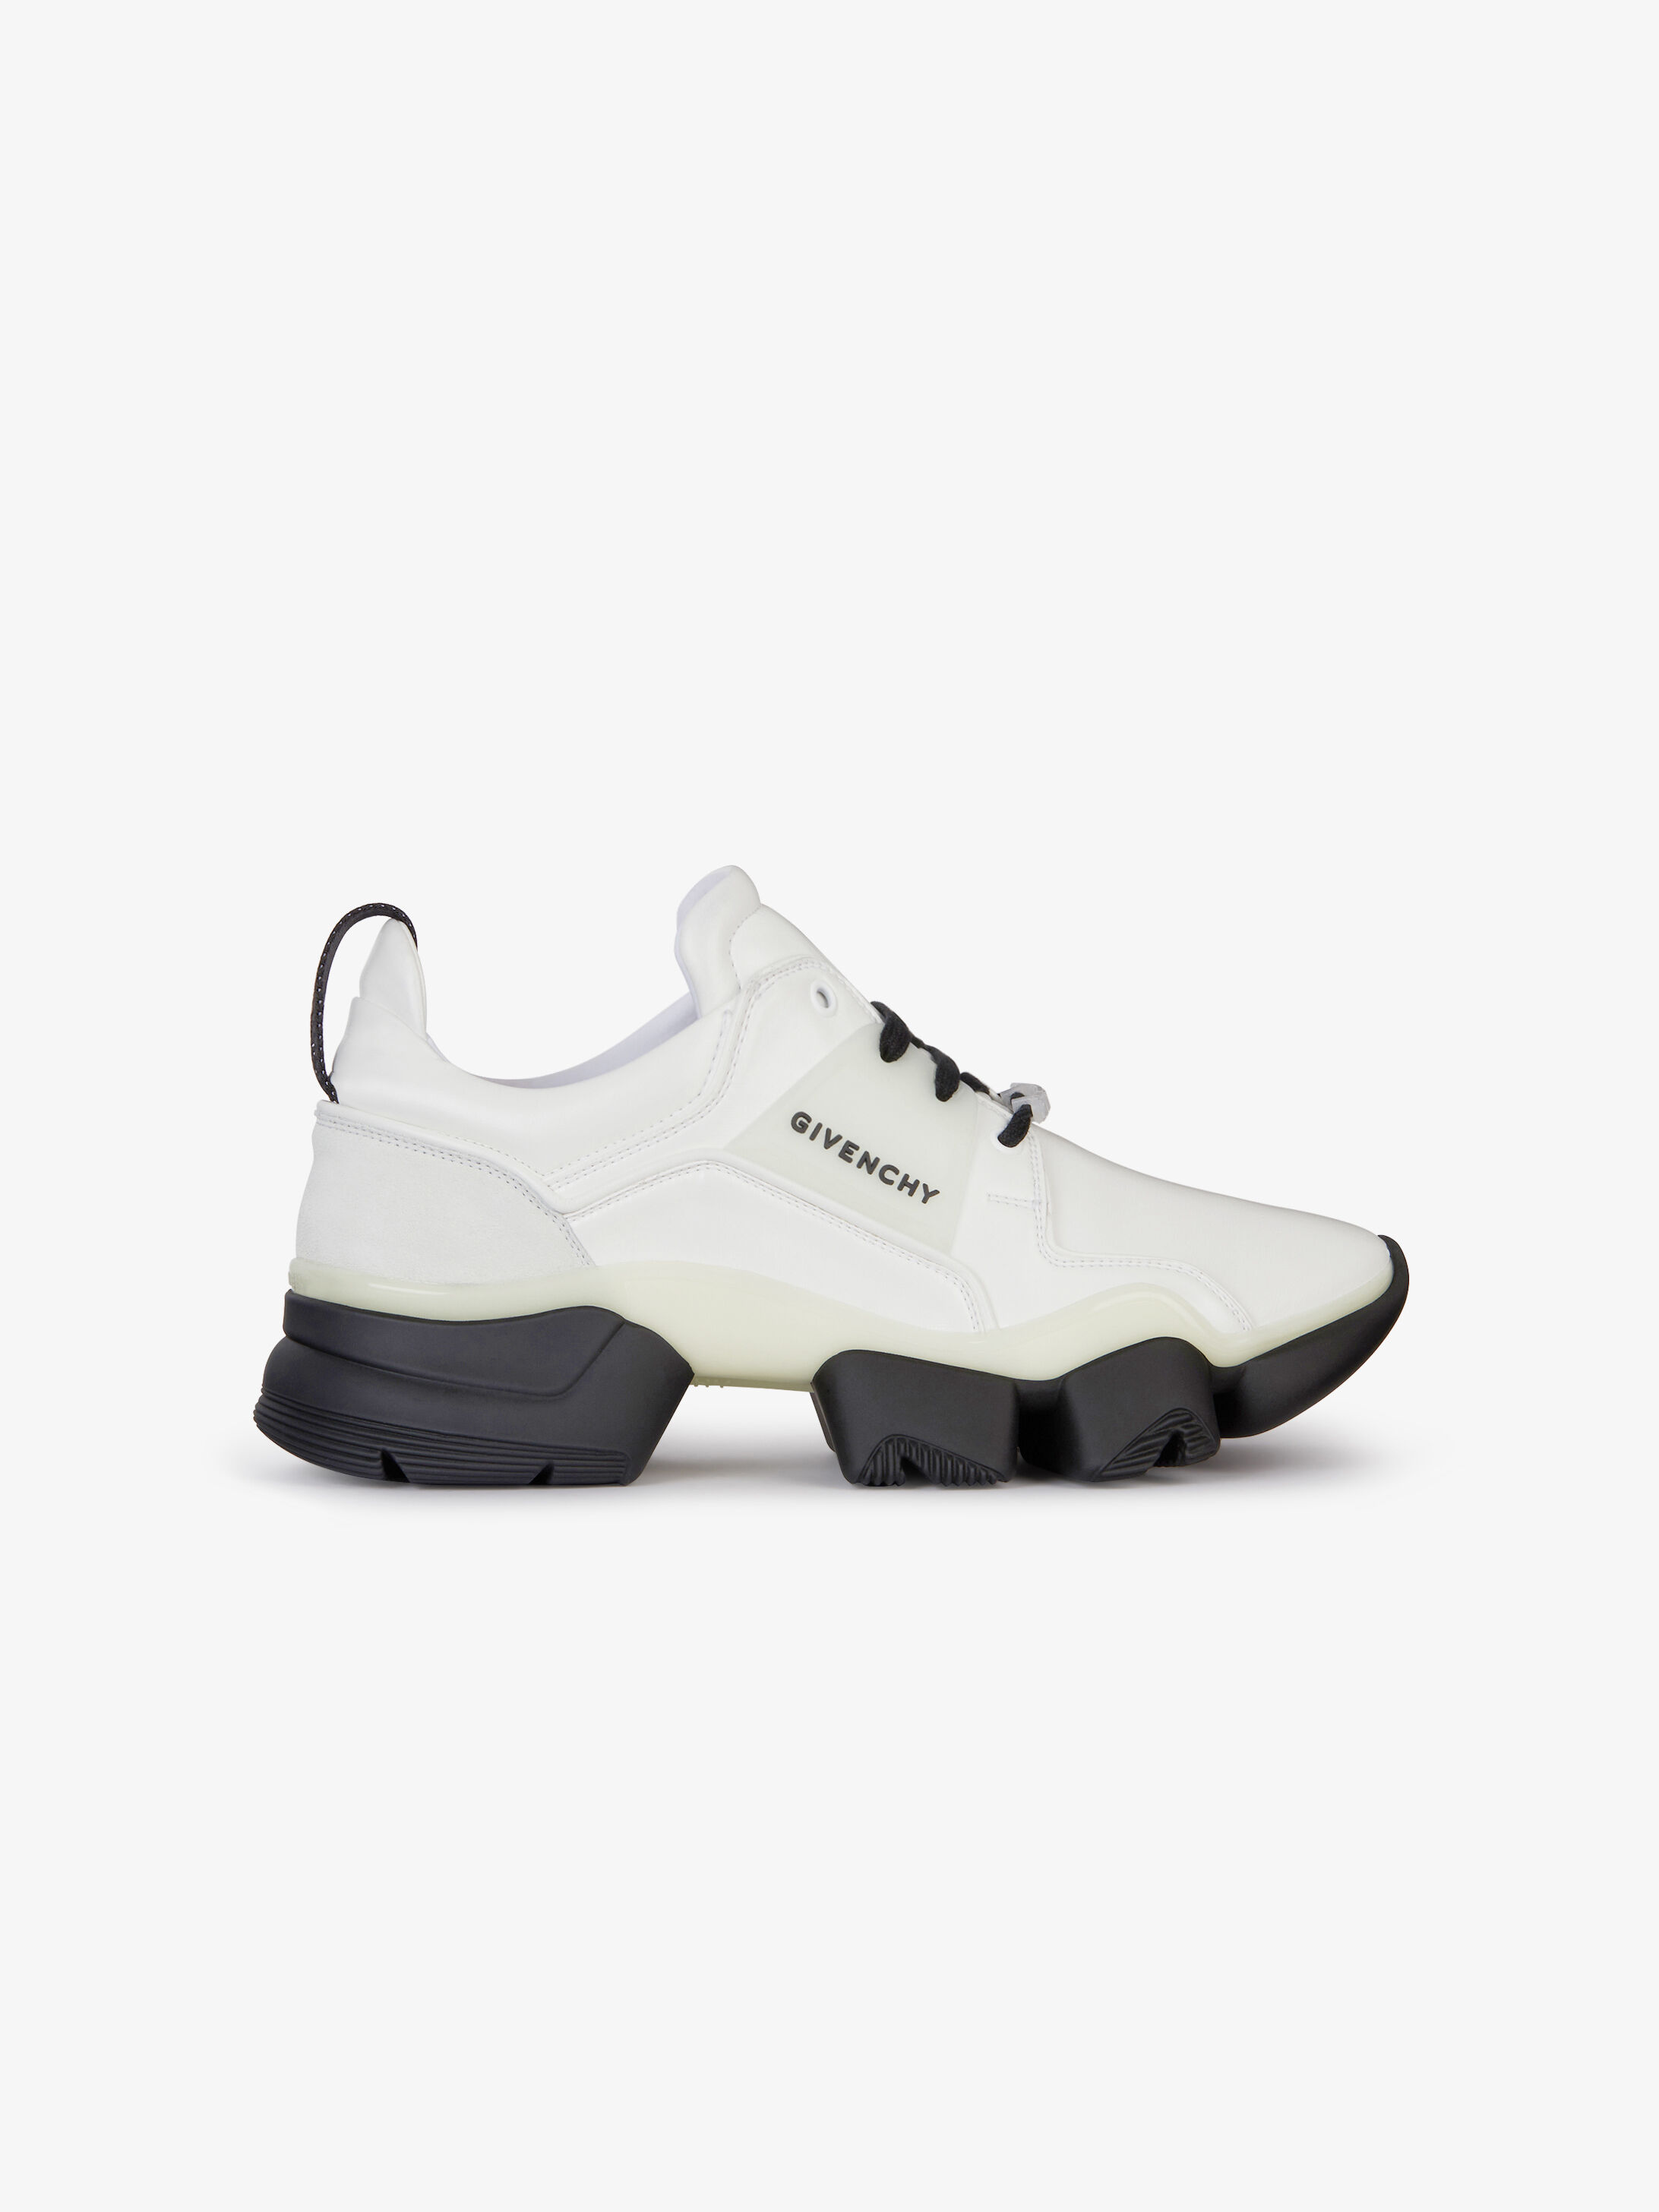 ef6f4daa6 Men's Sneakers collection by Givenchy. | GIVENCHY Paris